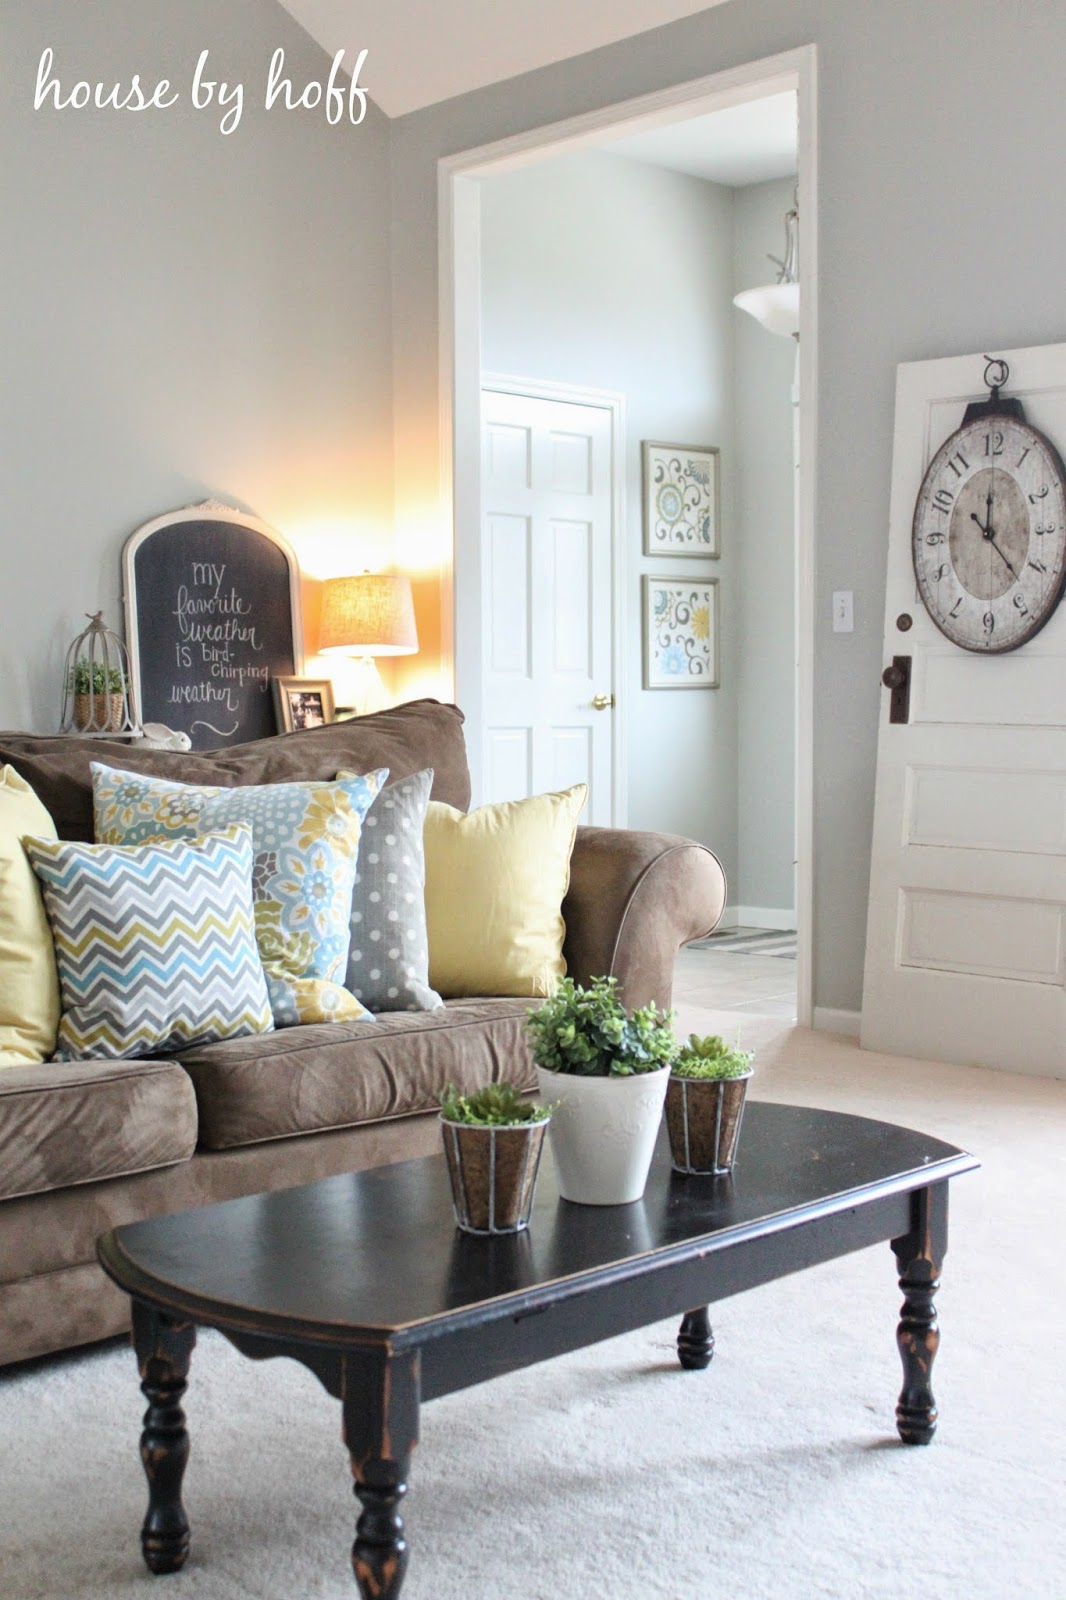 how to decorate with repurposed items via housebyhoff.com